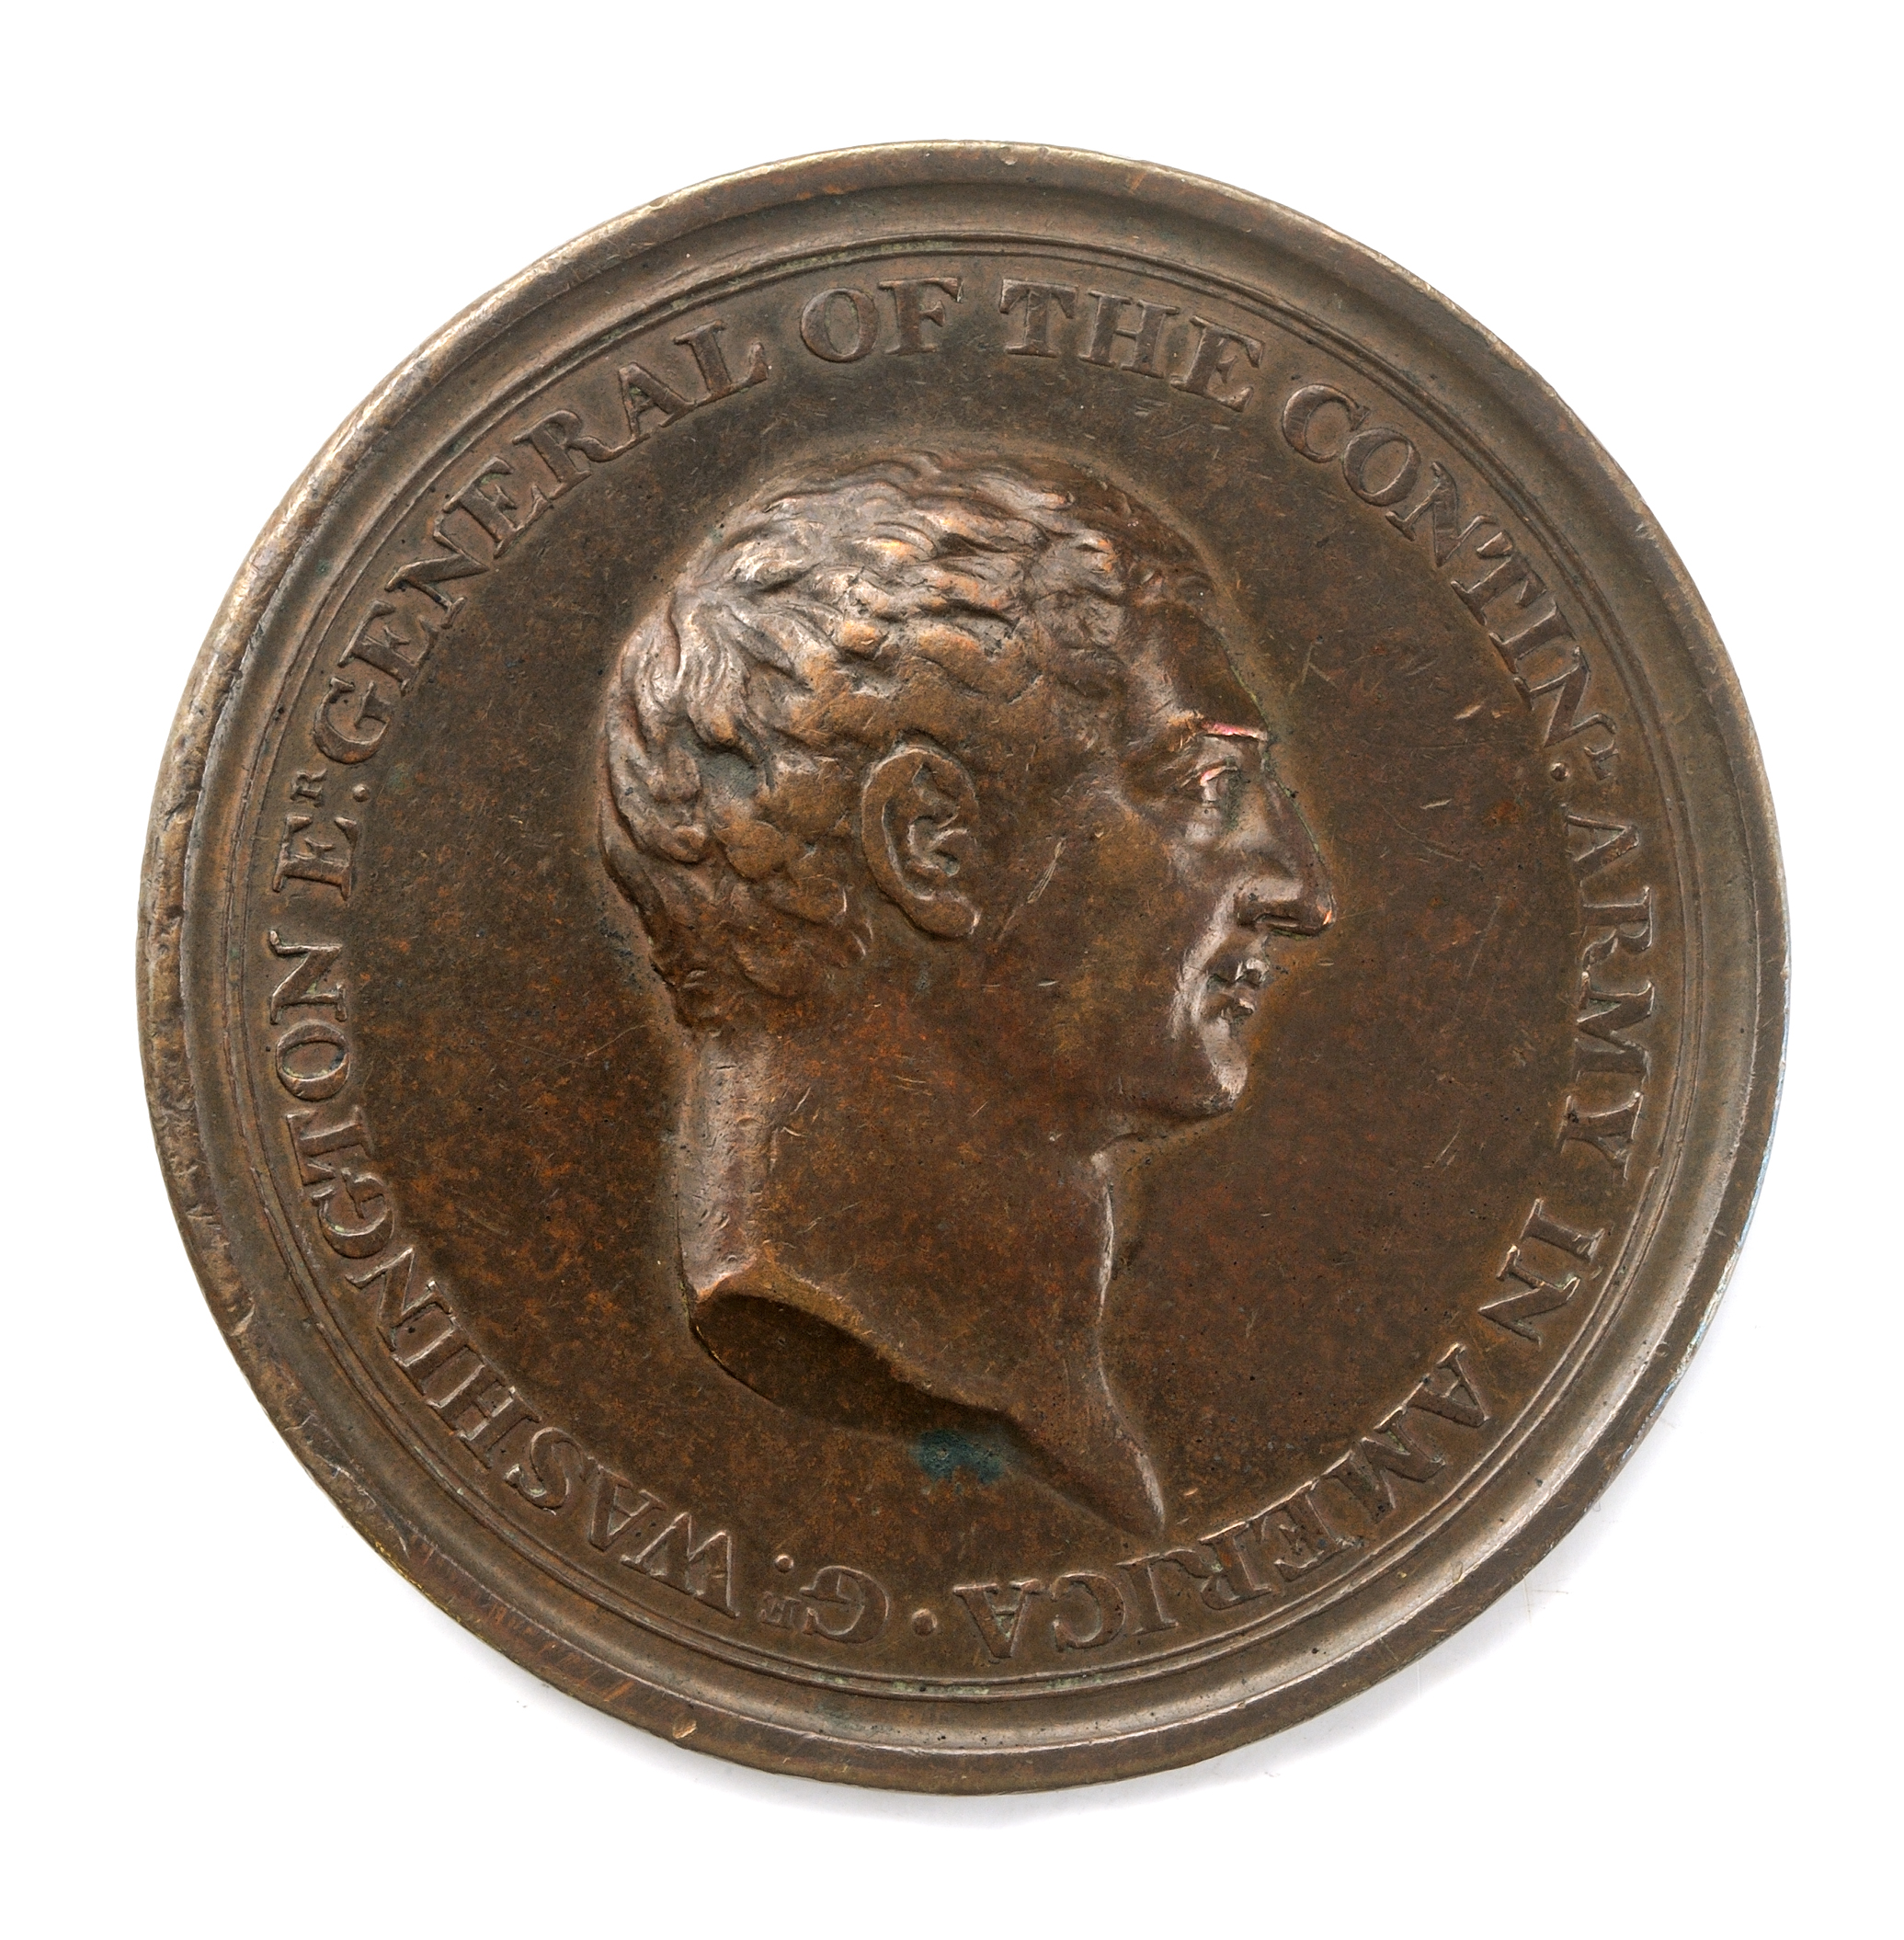 Voltaire medal, 1778